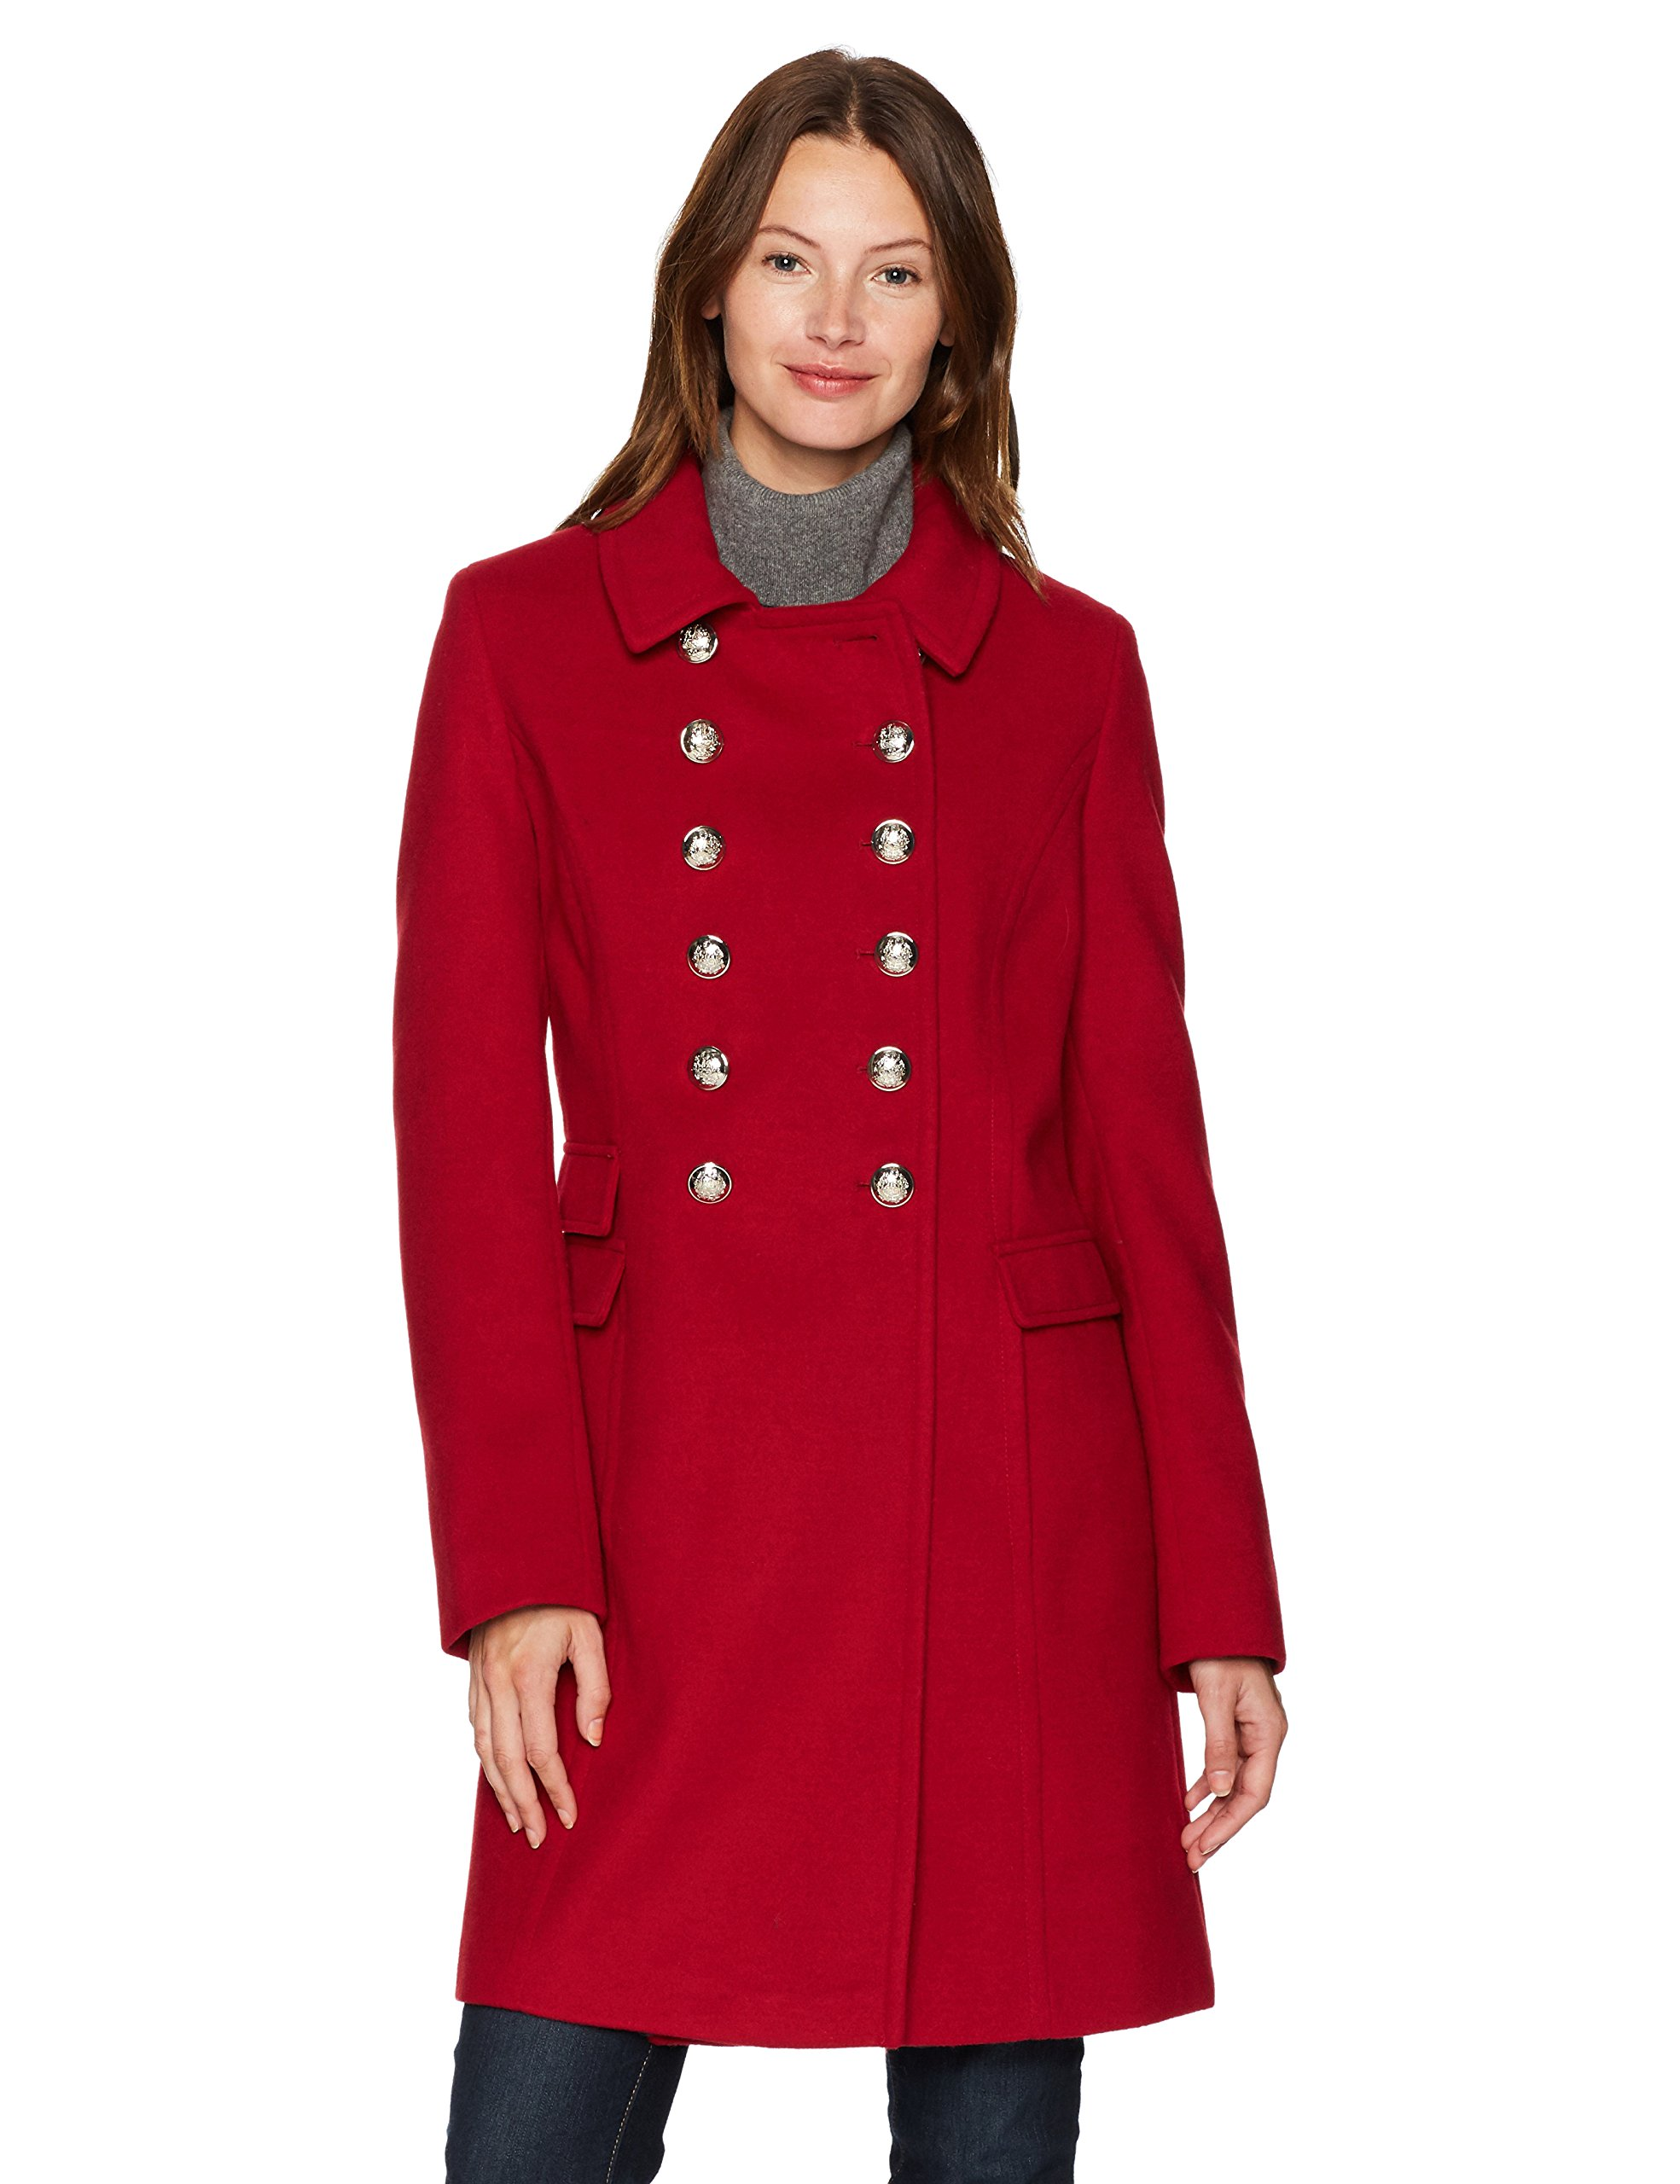 Tommy Hilfiger Women's Wool Blend Military Button Coat, Red, Large